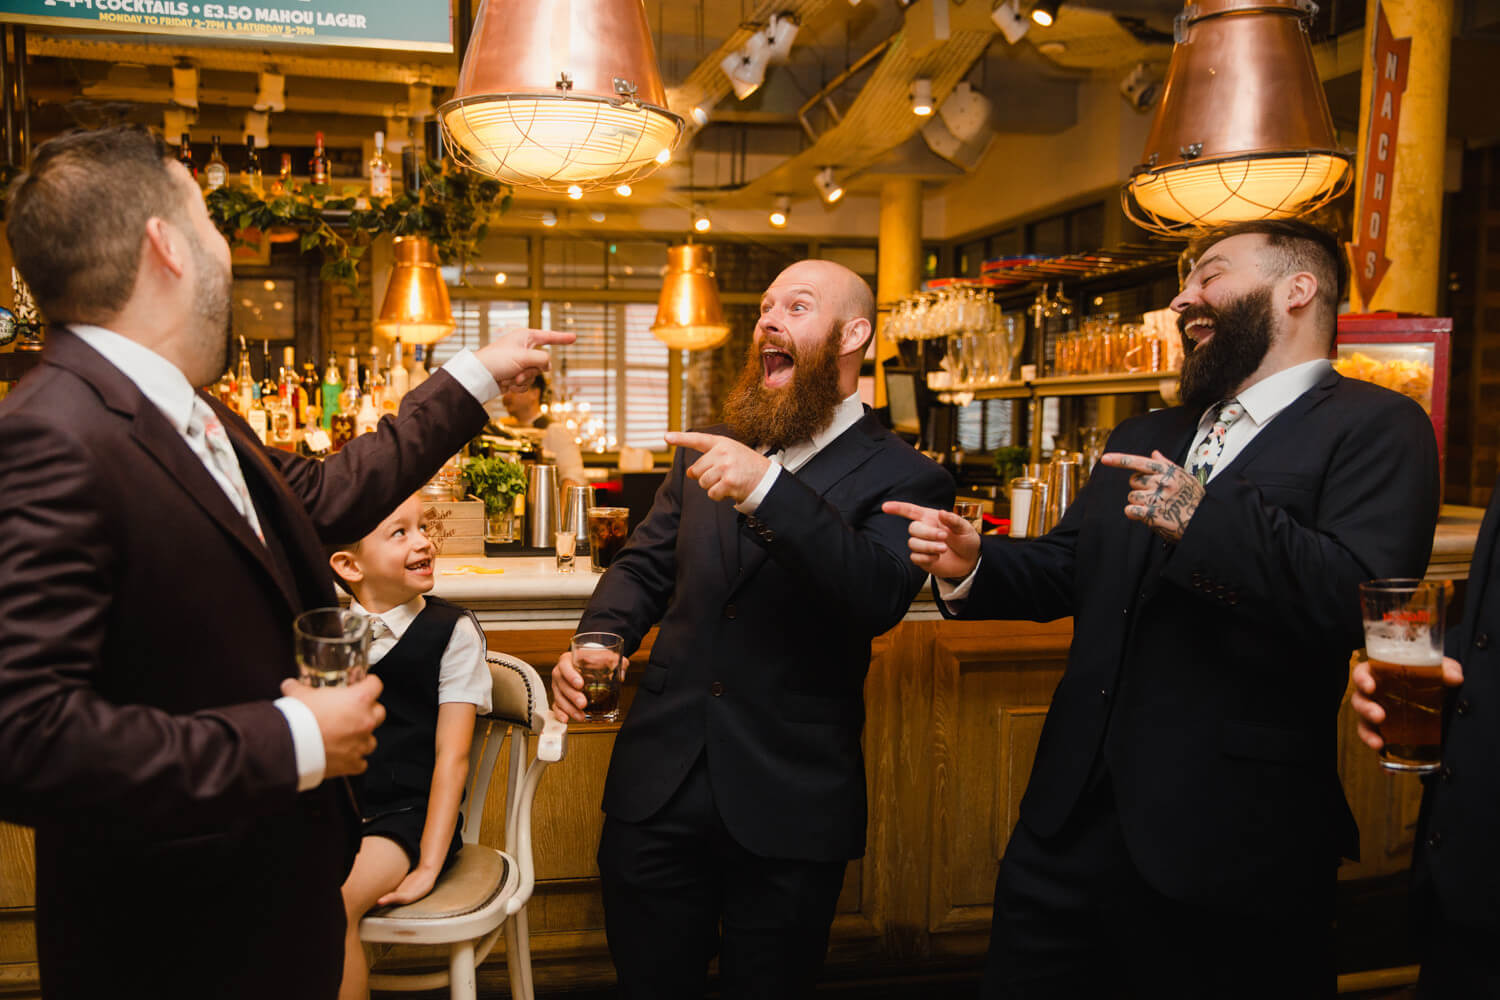 groomsmen at bar joking with groom about drinks outstanding